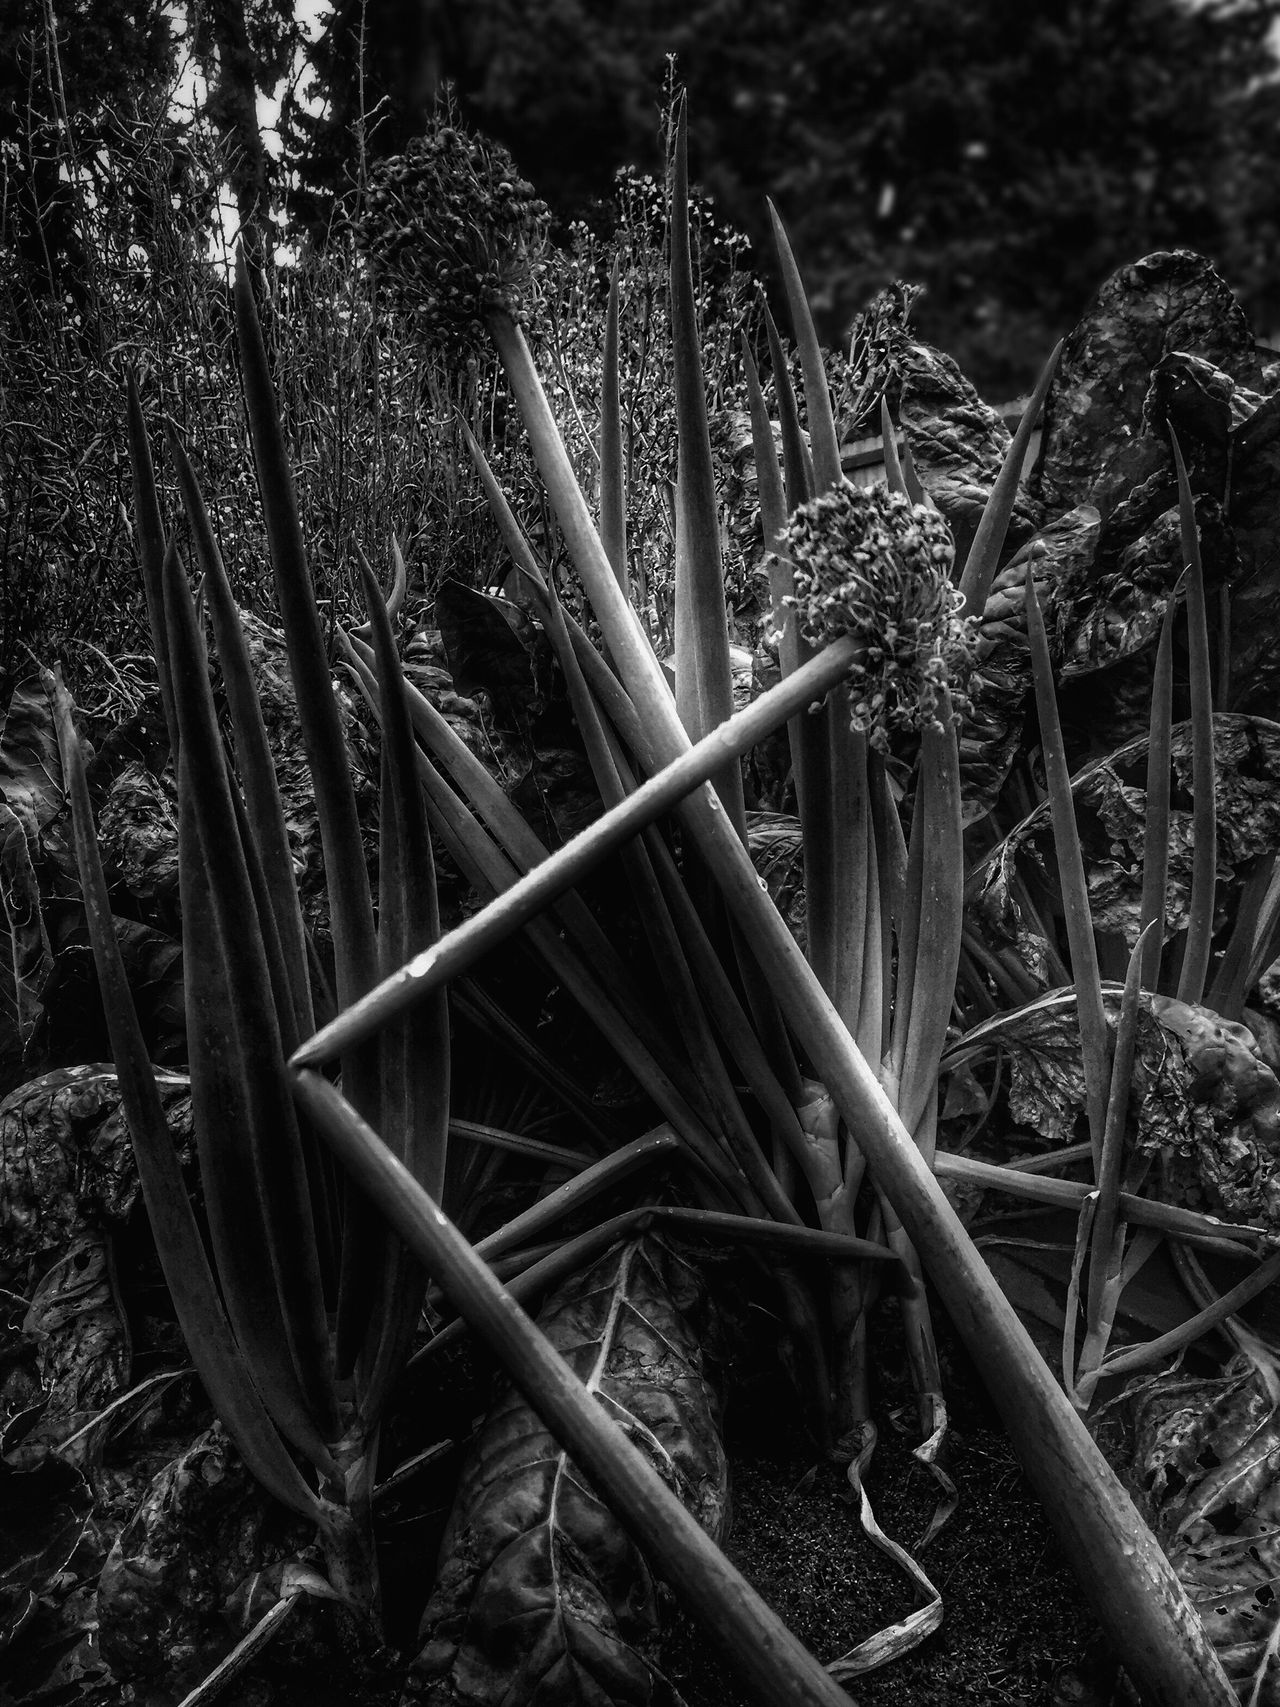 Close-up Growth Plant Full Frame Nature Lush Foliage Outdoors Soil Tranquility Beauty In Nature Botany Perspective Views Black And White Dirt Scenics Togetherness